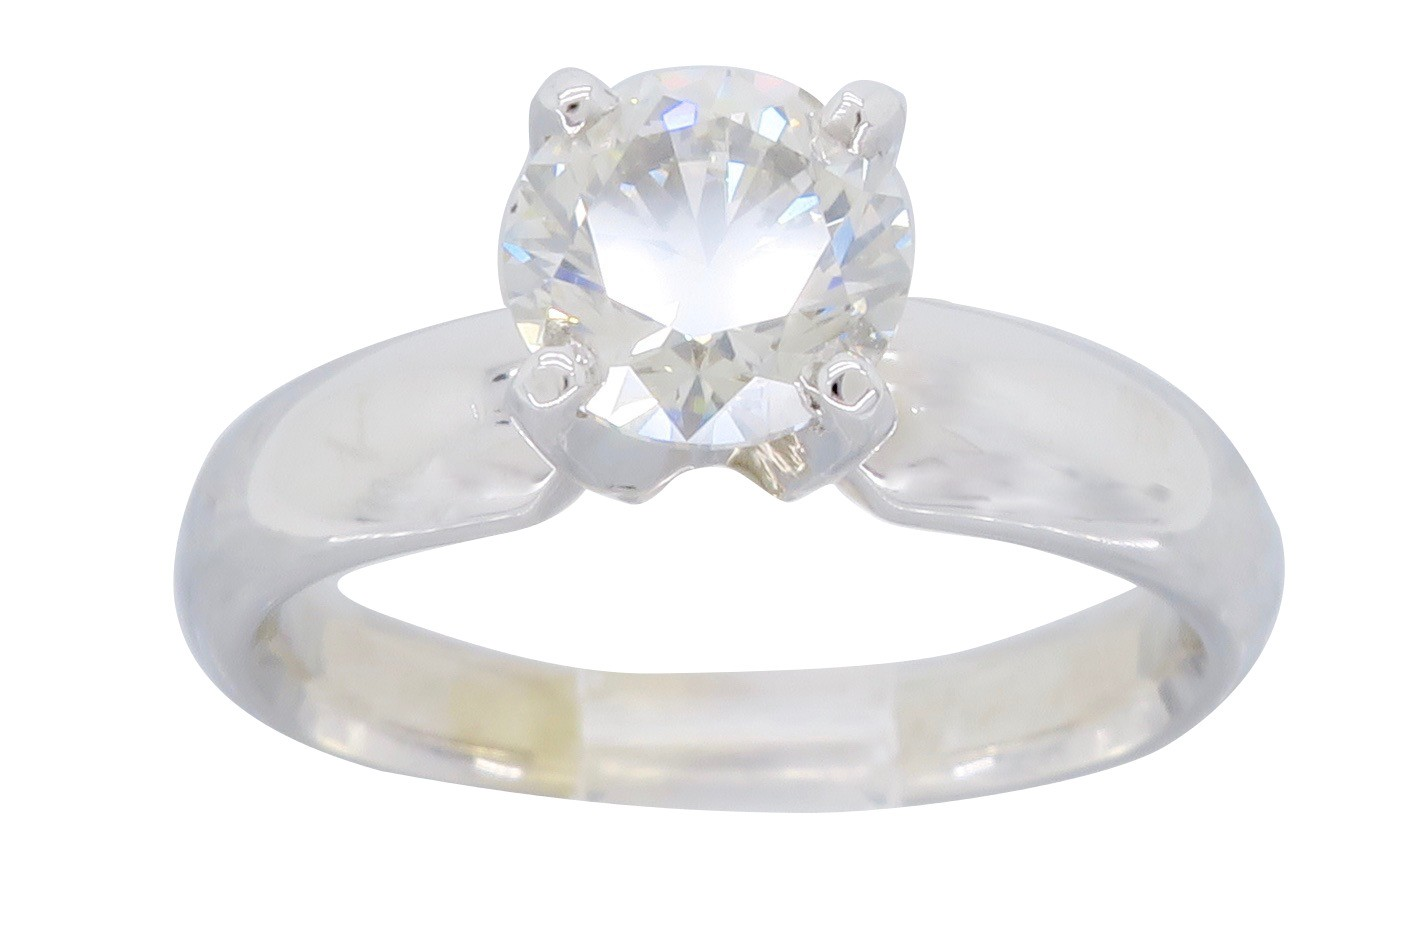 Rare gorgeous 1.00CT GIA Certified Fancy Light Gray Solitaire